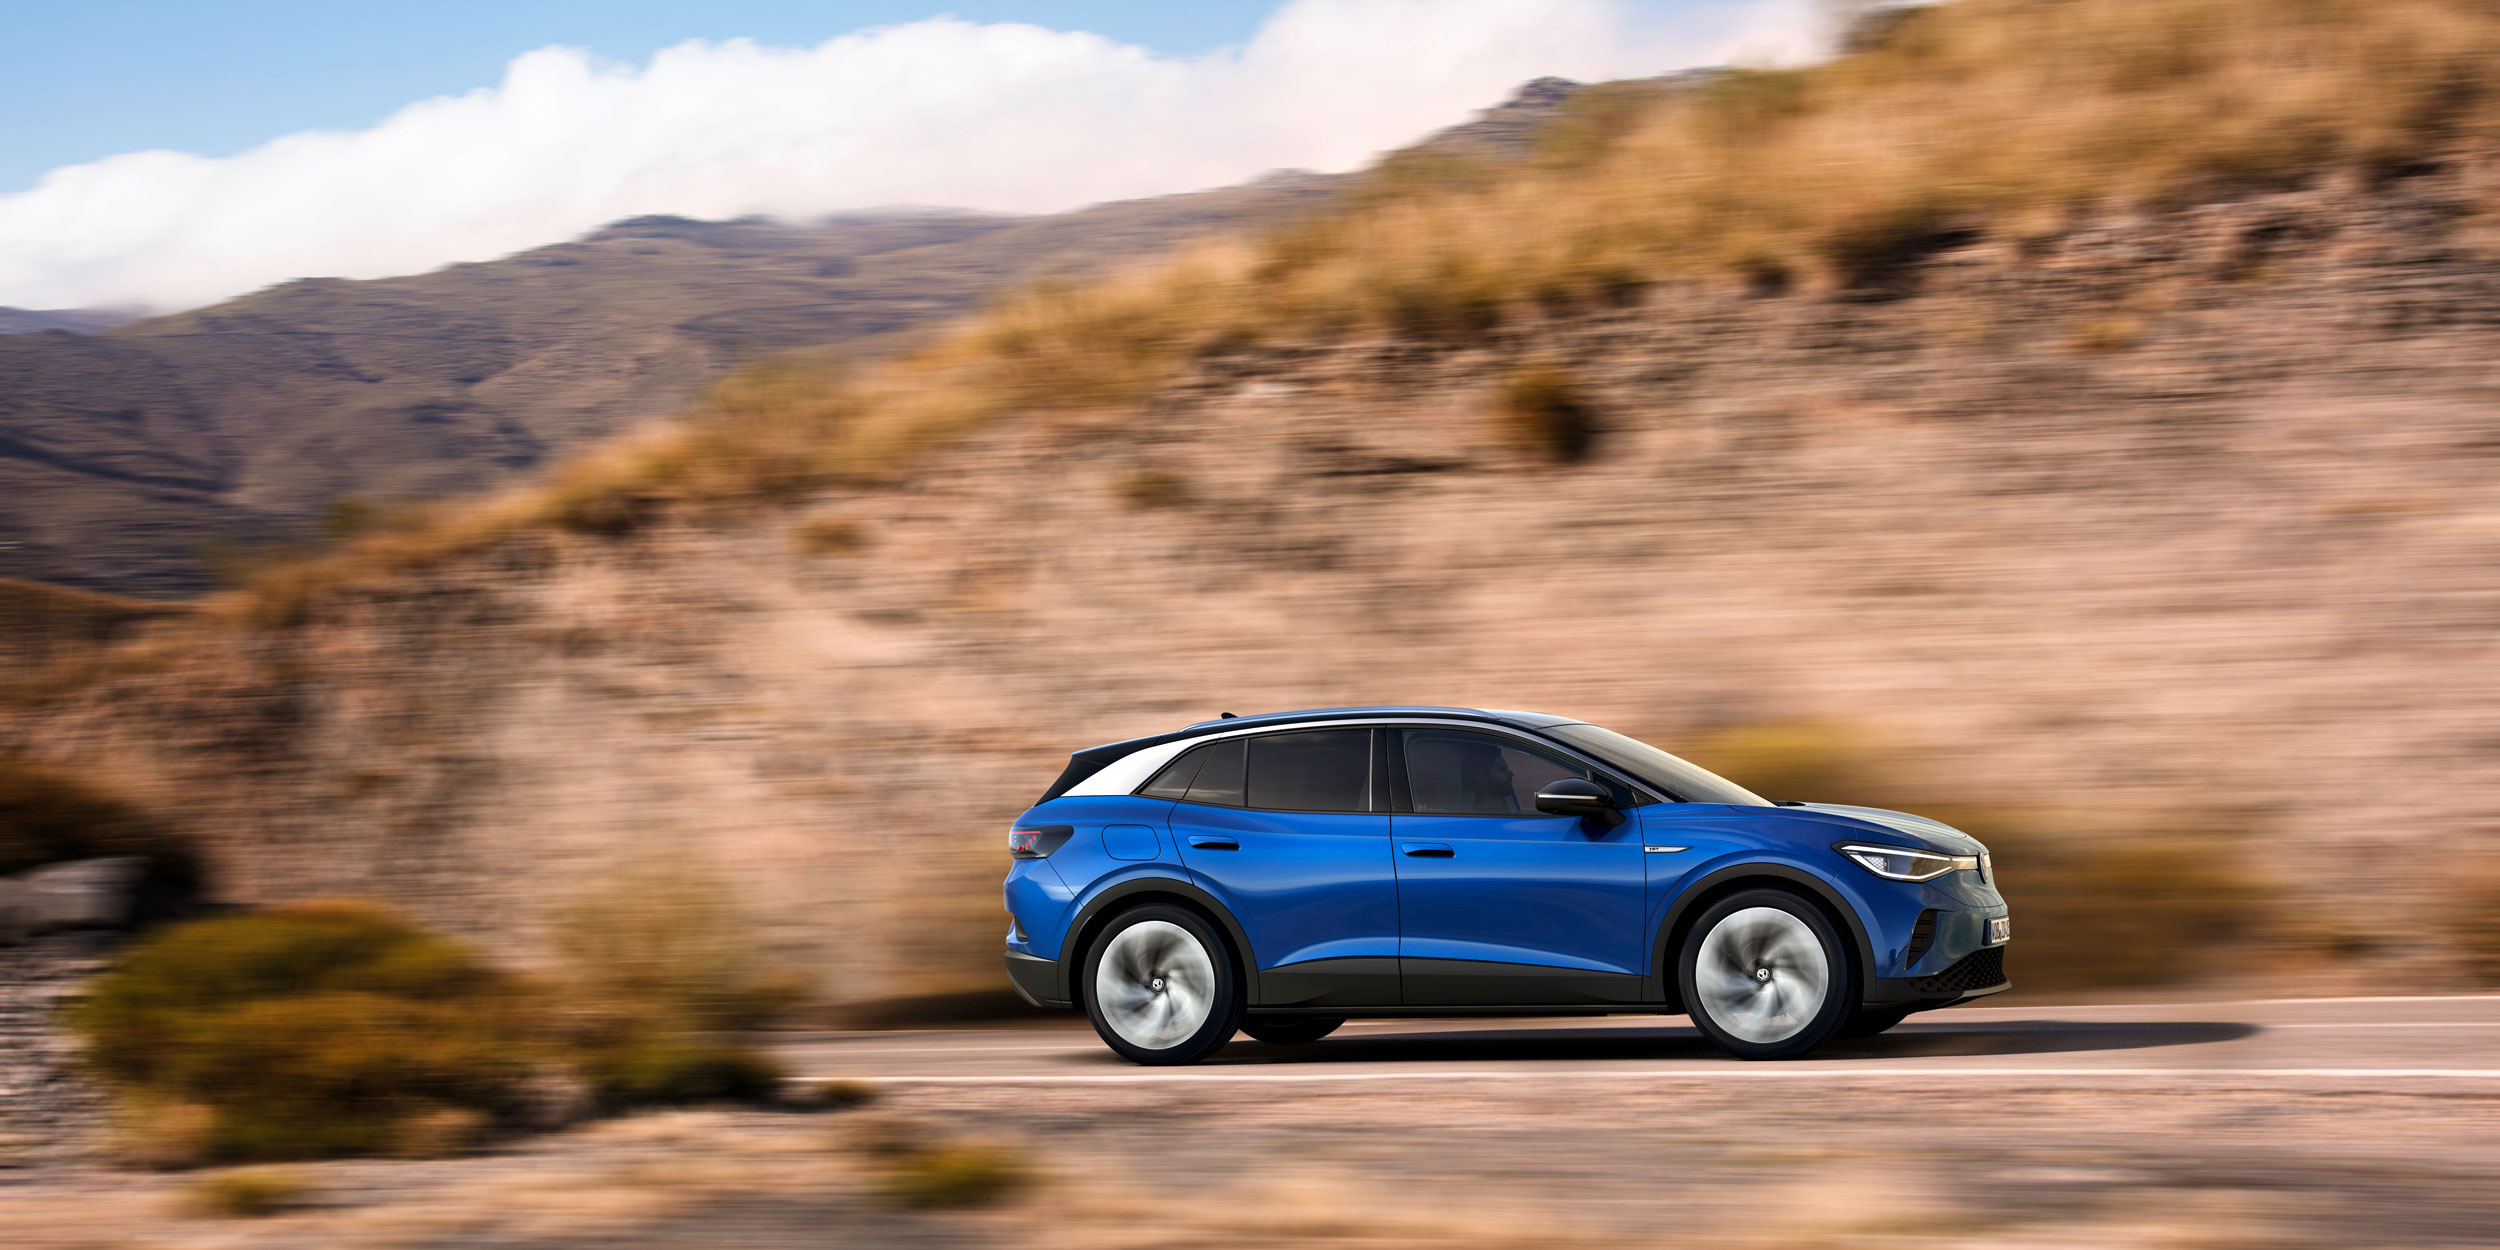 EPA CONFIRMS 250-MILE RANGE FOR VOLKSWAGEN ID.4 PRO AND 1ST EDITION ELECTRIC SUV